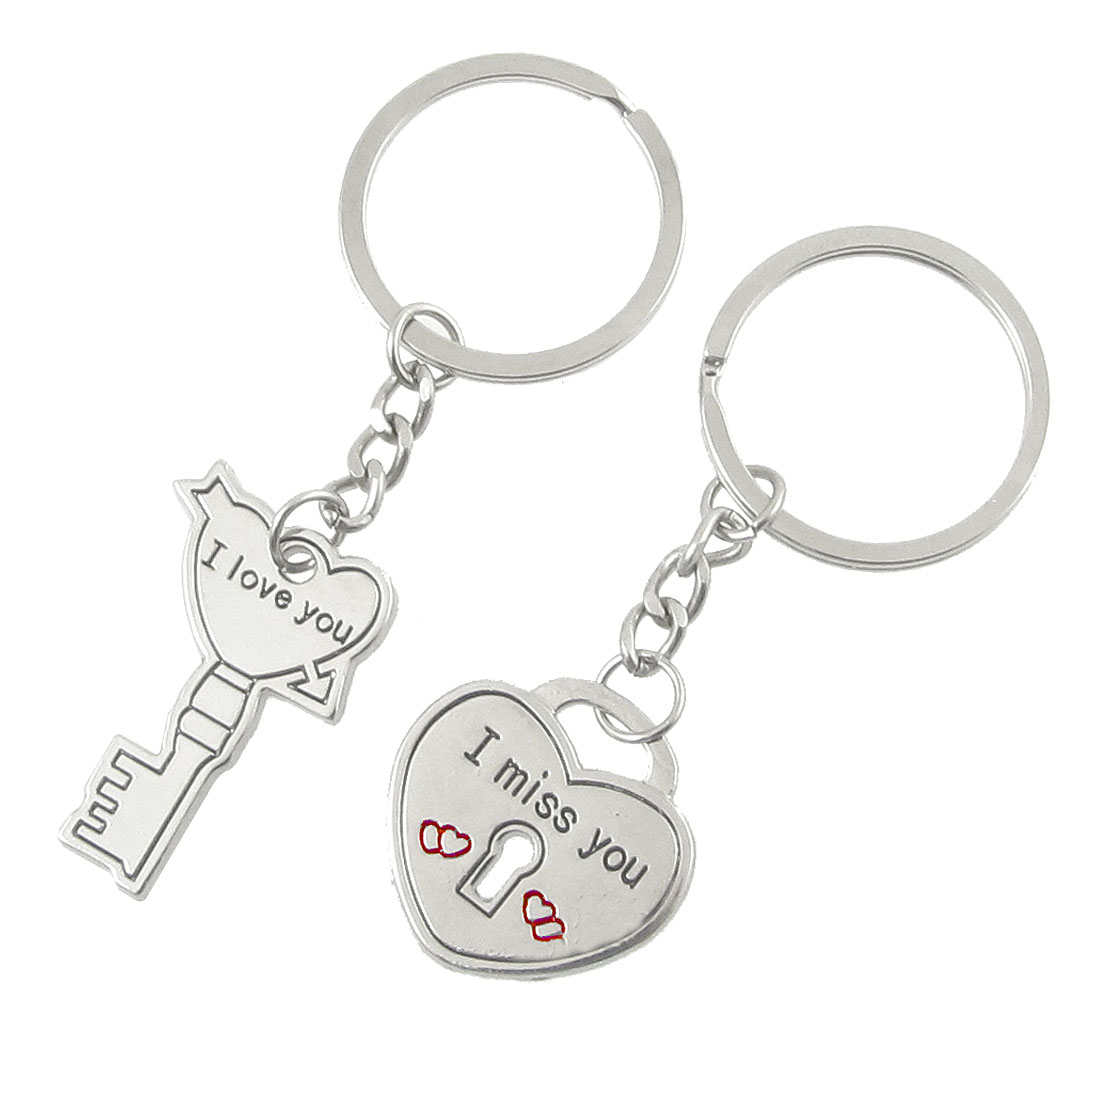 2 Pcs Couple Love Key Heart Shape Chain Keychain Silver Tone